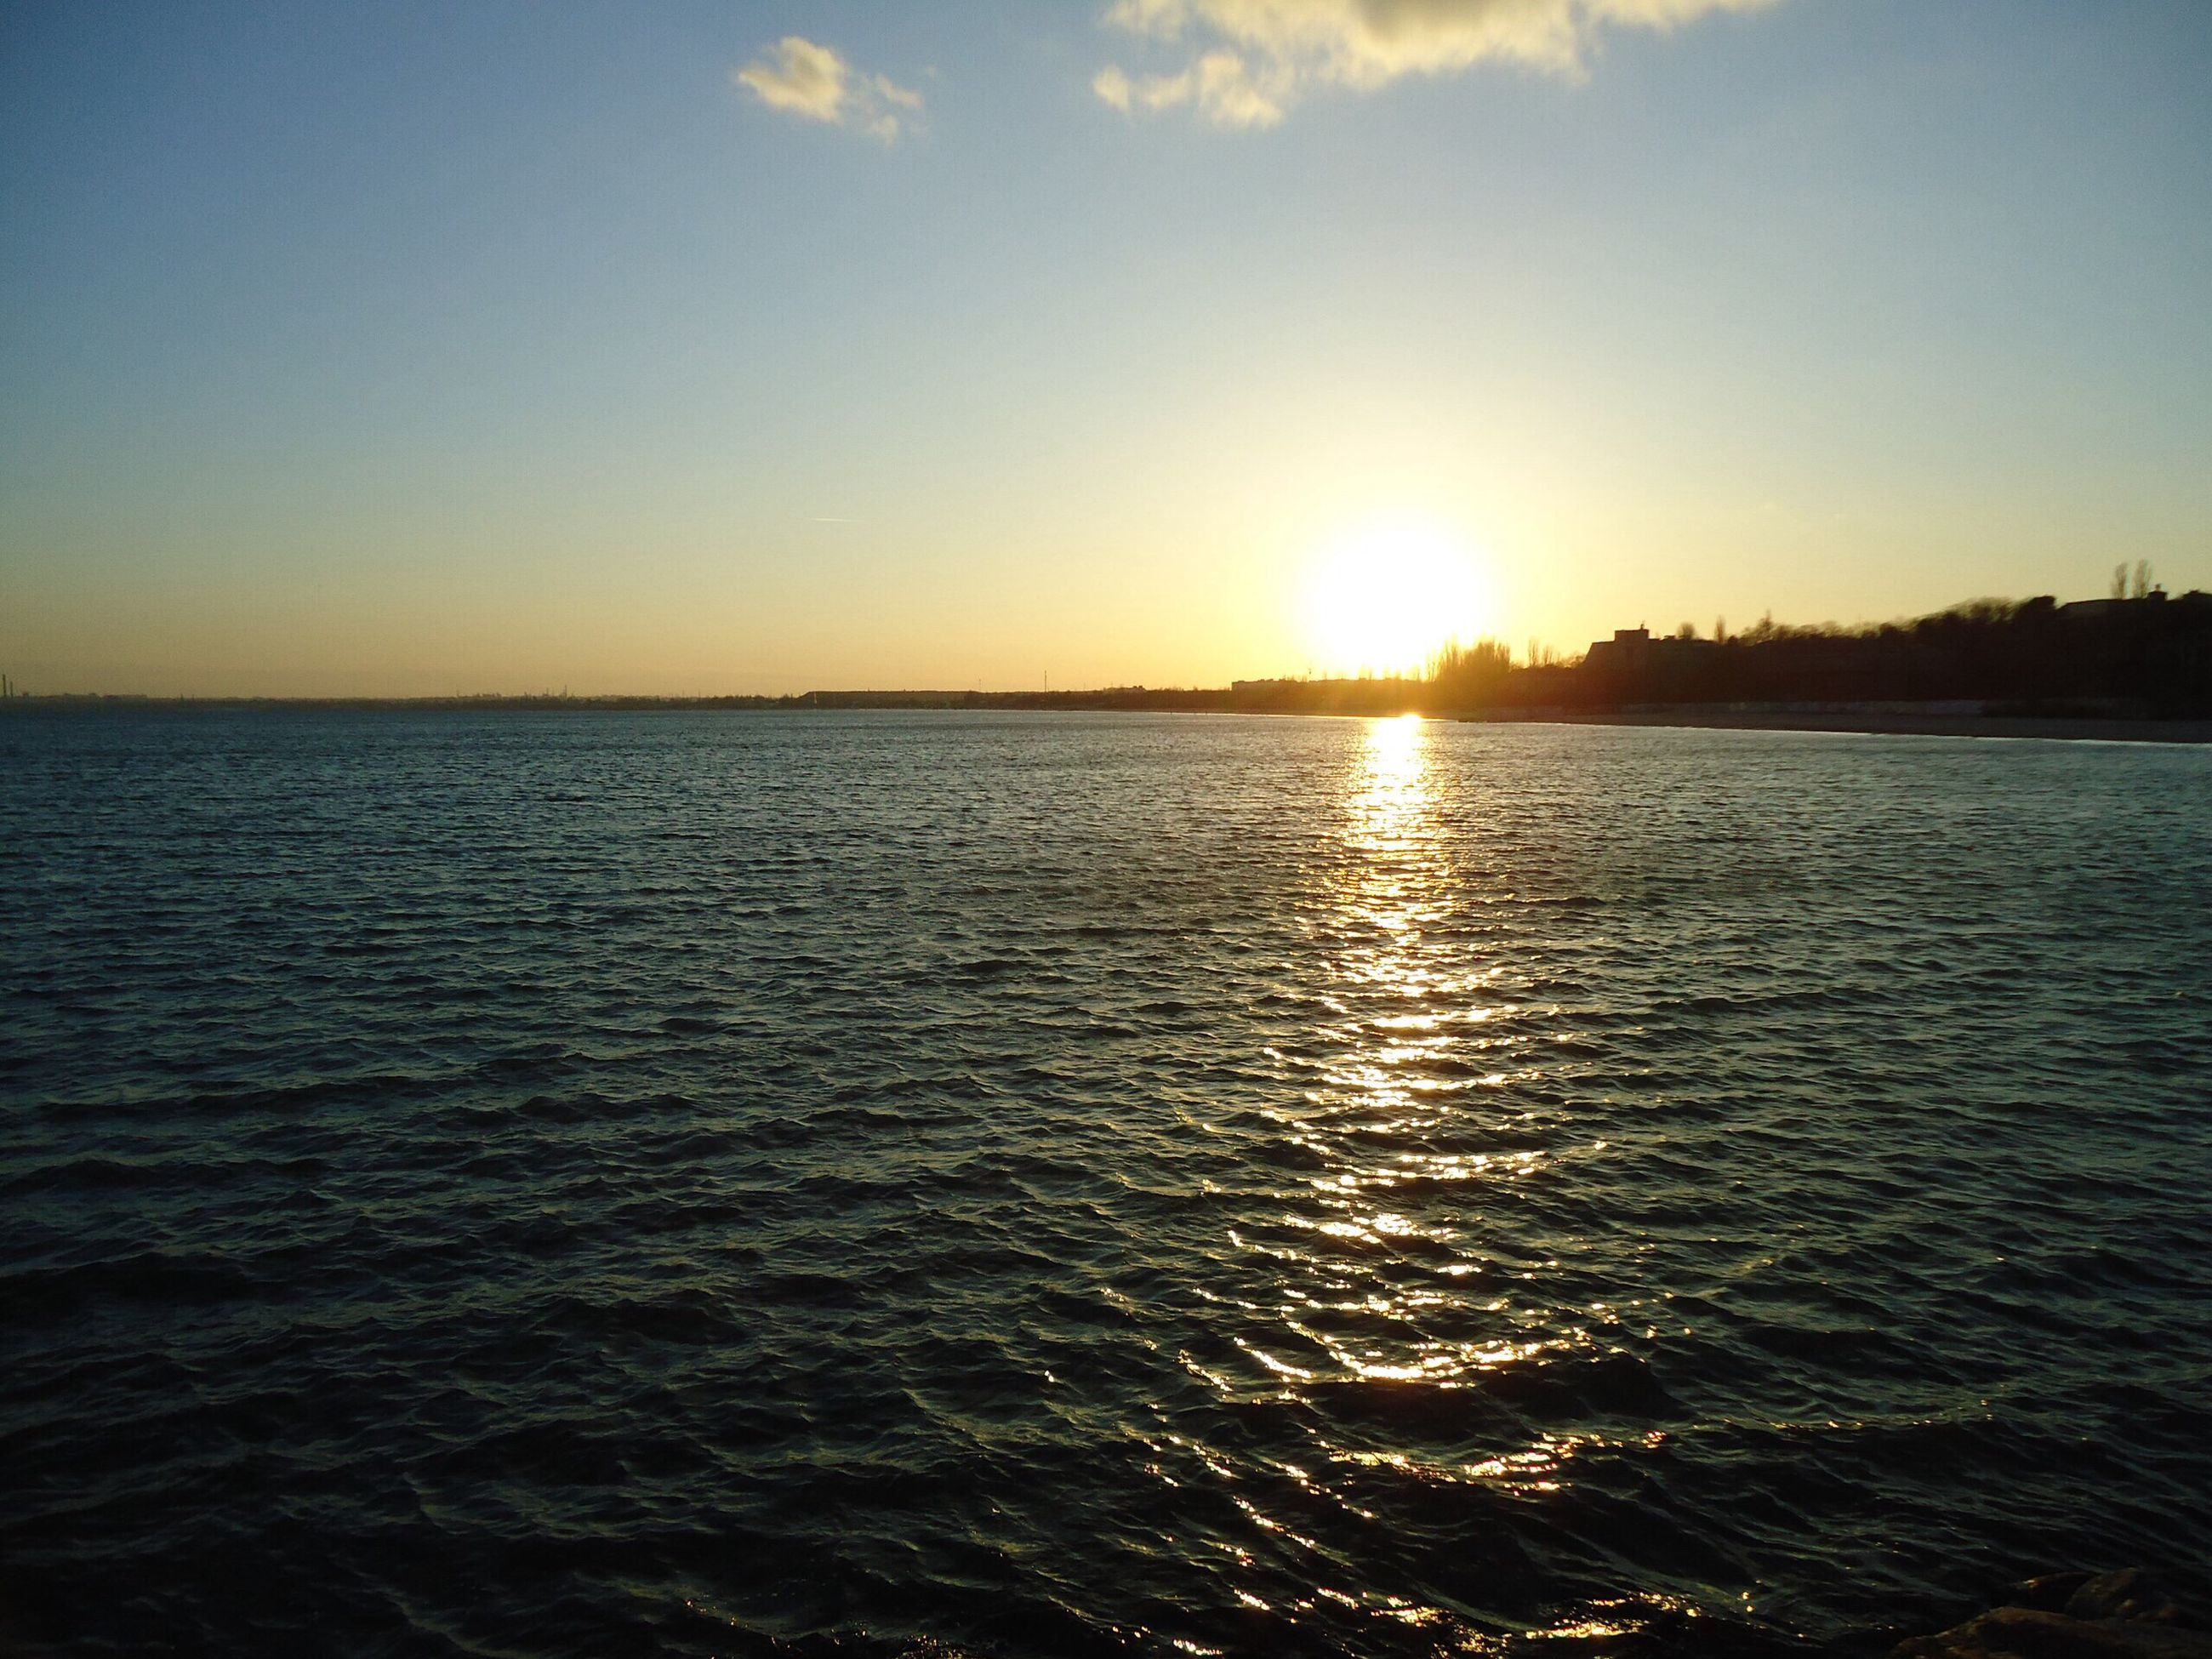 water, sunset, sea, sun, scenics, tranquil scene, waterfront, beauty in nature, tranquility, rippled, reflection, nature, idyllic, sky, horizon over water, sunlight, orange color, seascape, outdoors, sunbeam, no people, remote, calm, non-urban scene, ocean, majestic, blue, water surface